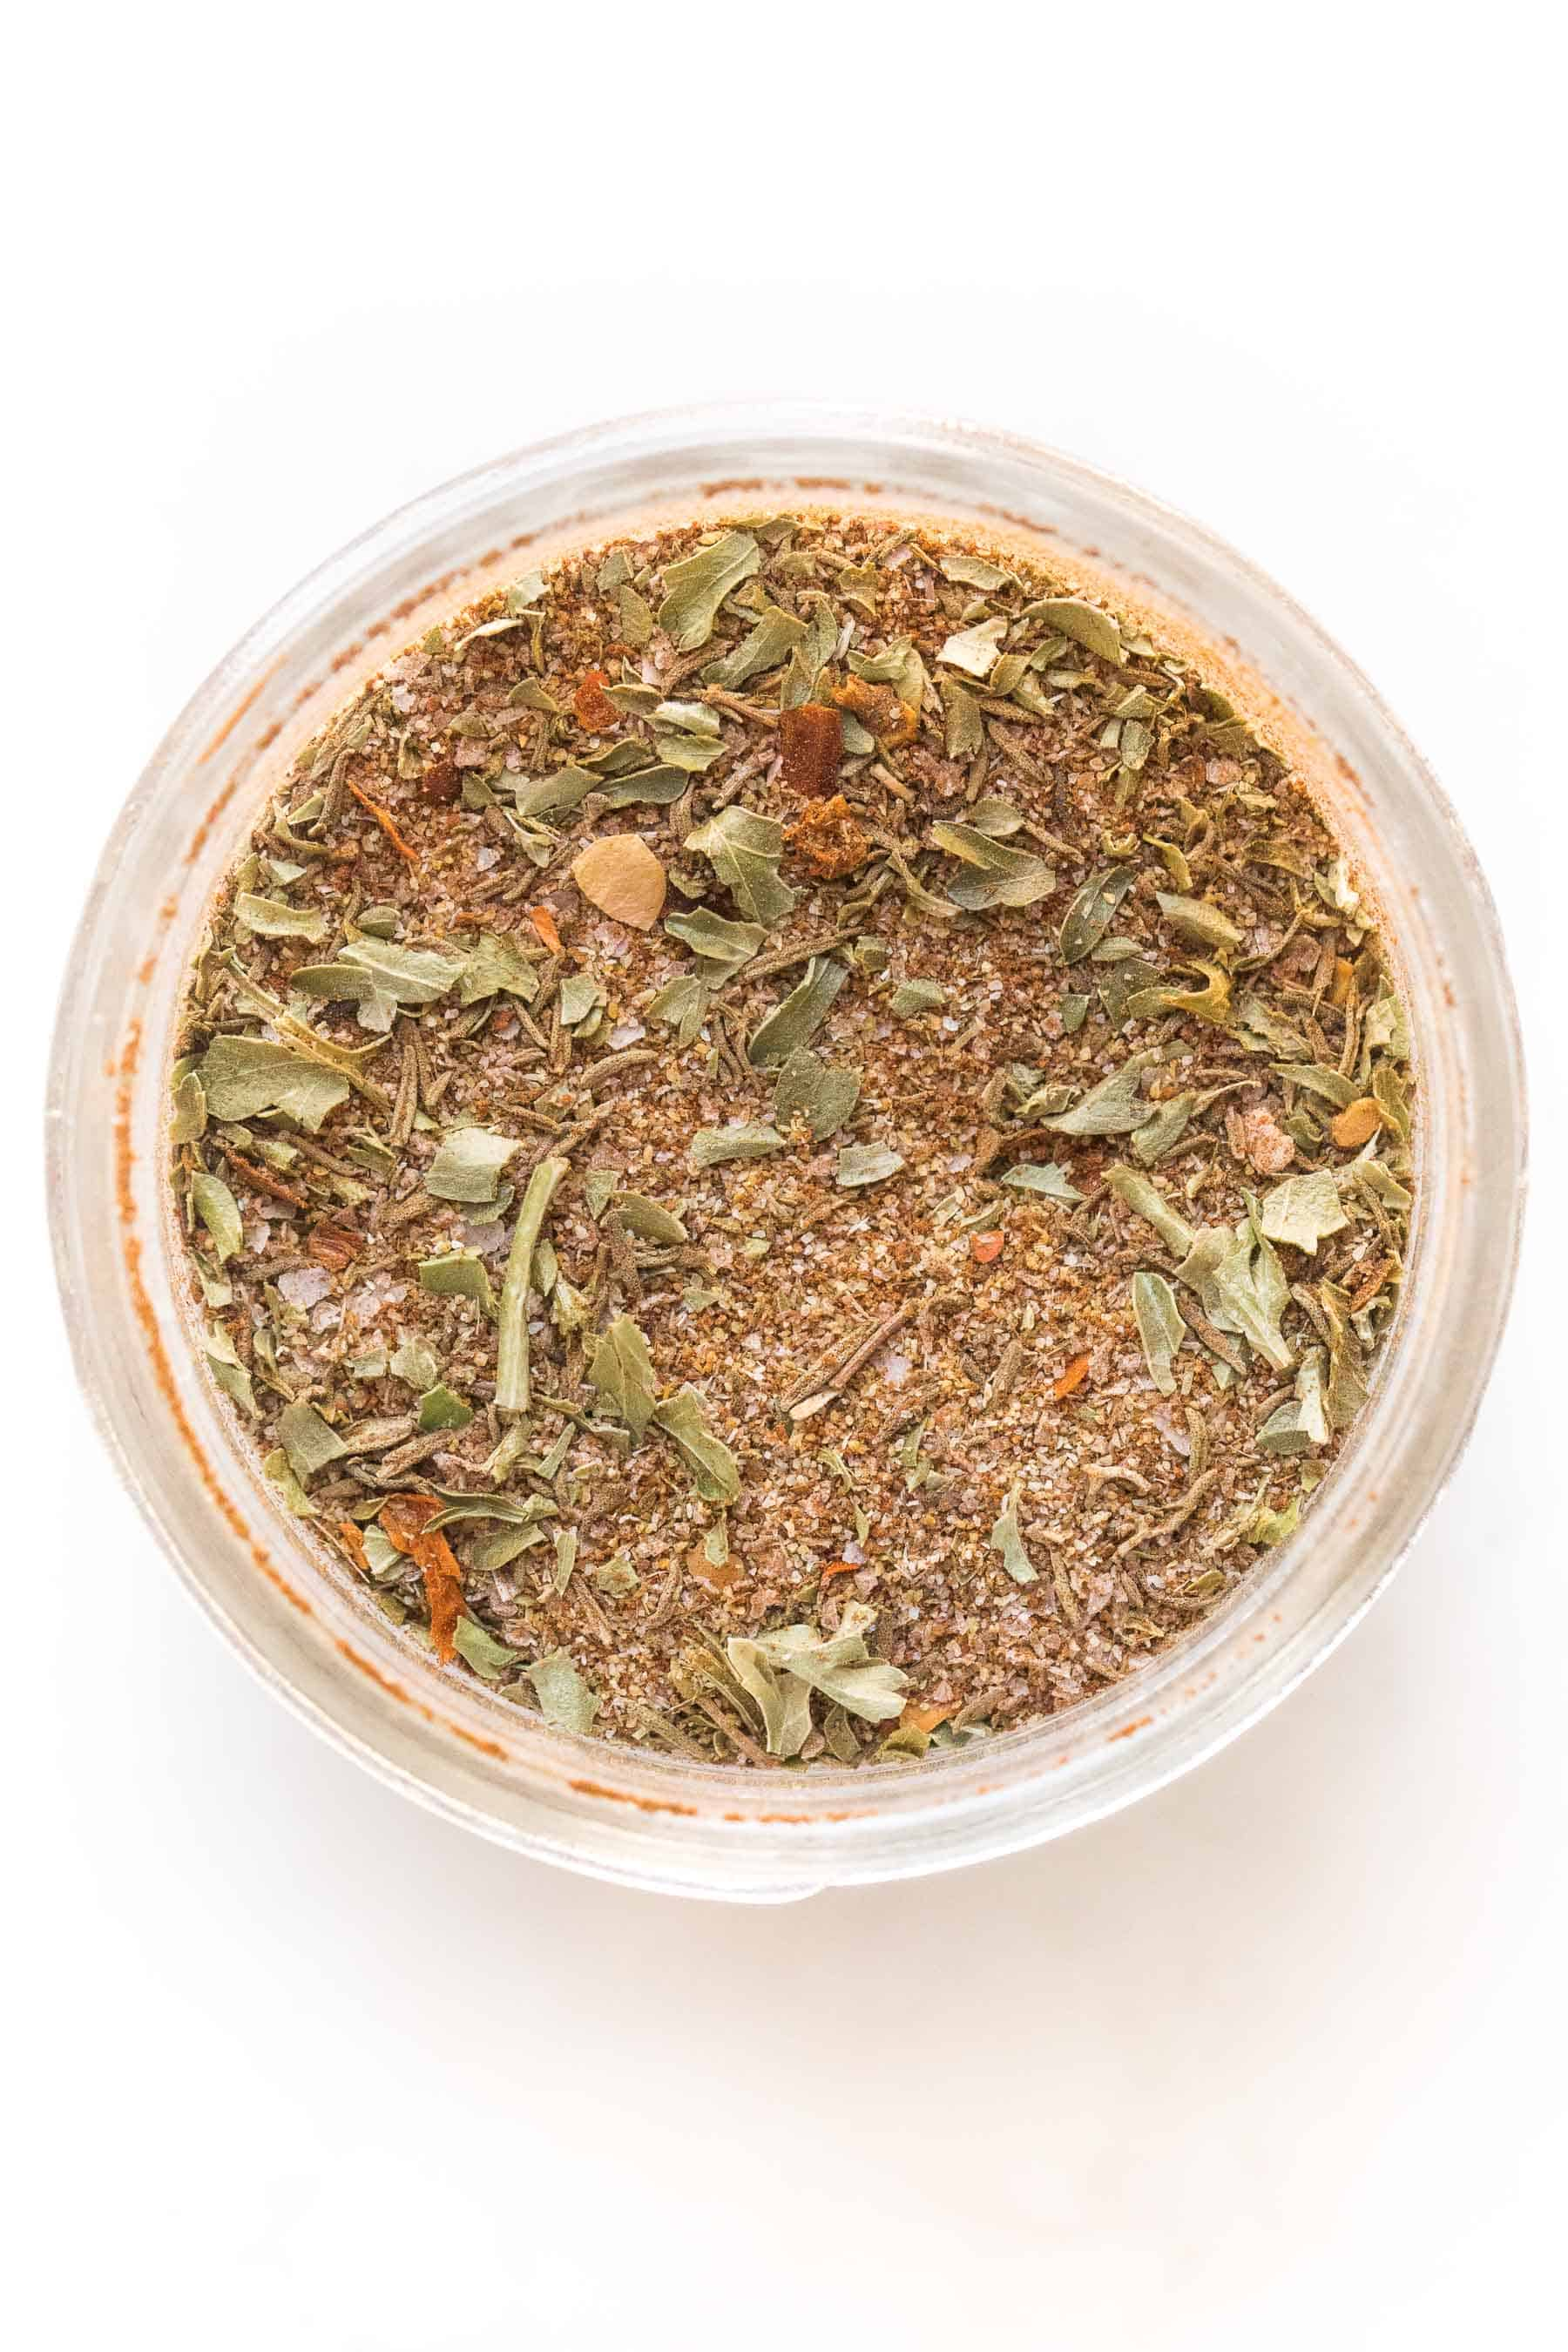 jamaican jerk seasoning in a mason jar on a white background